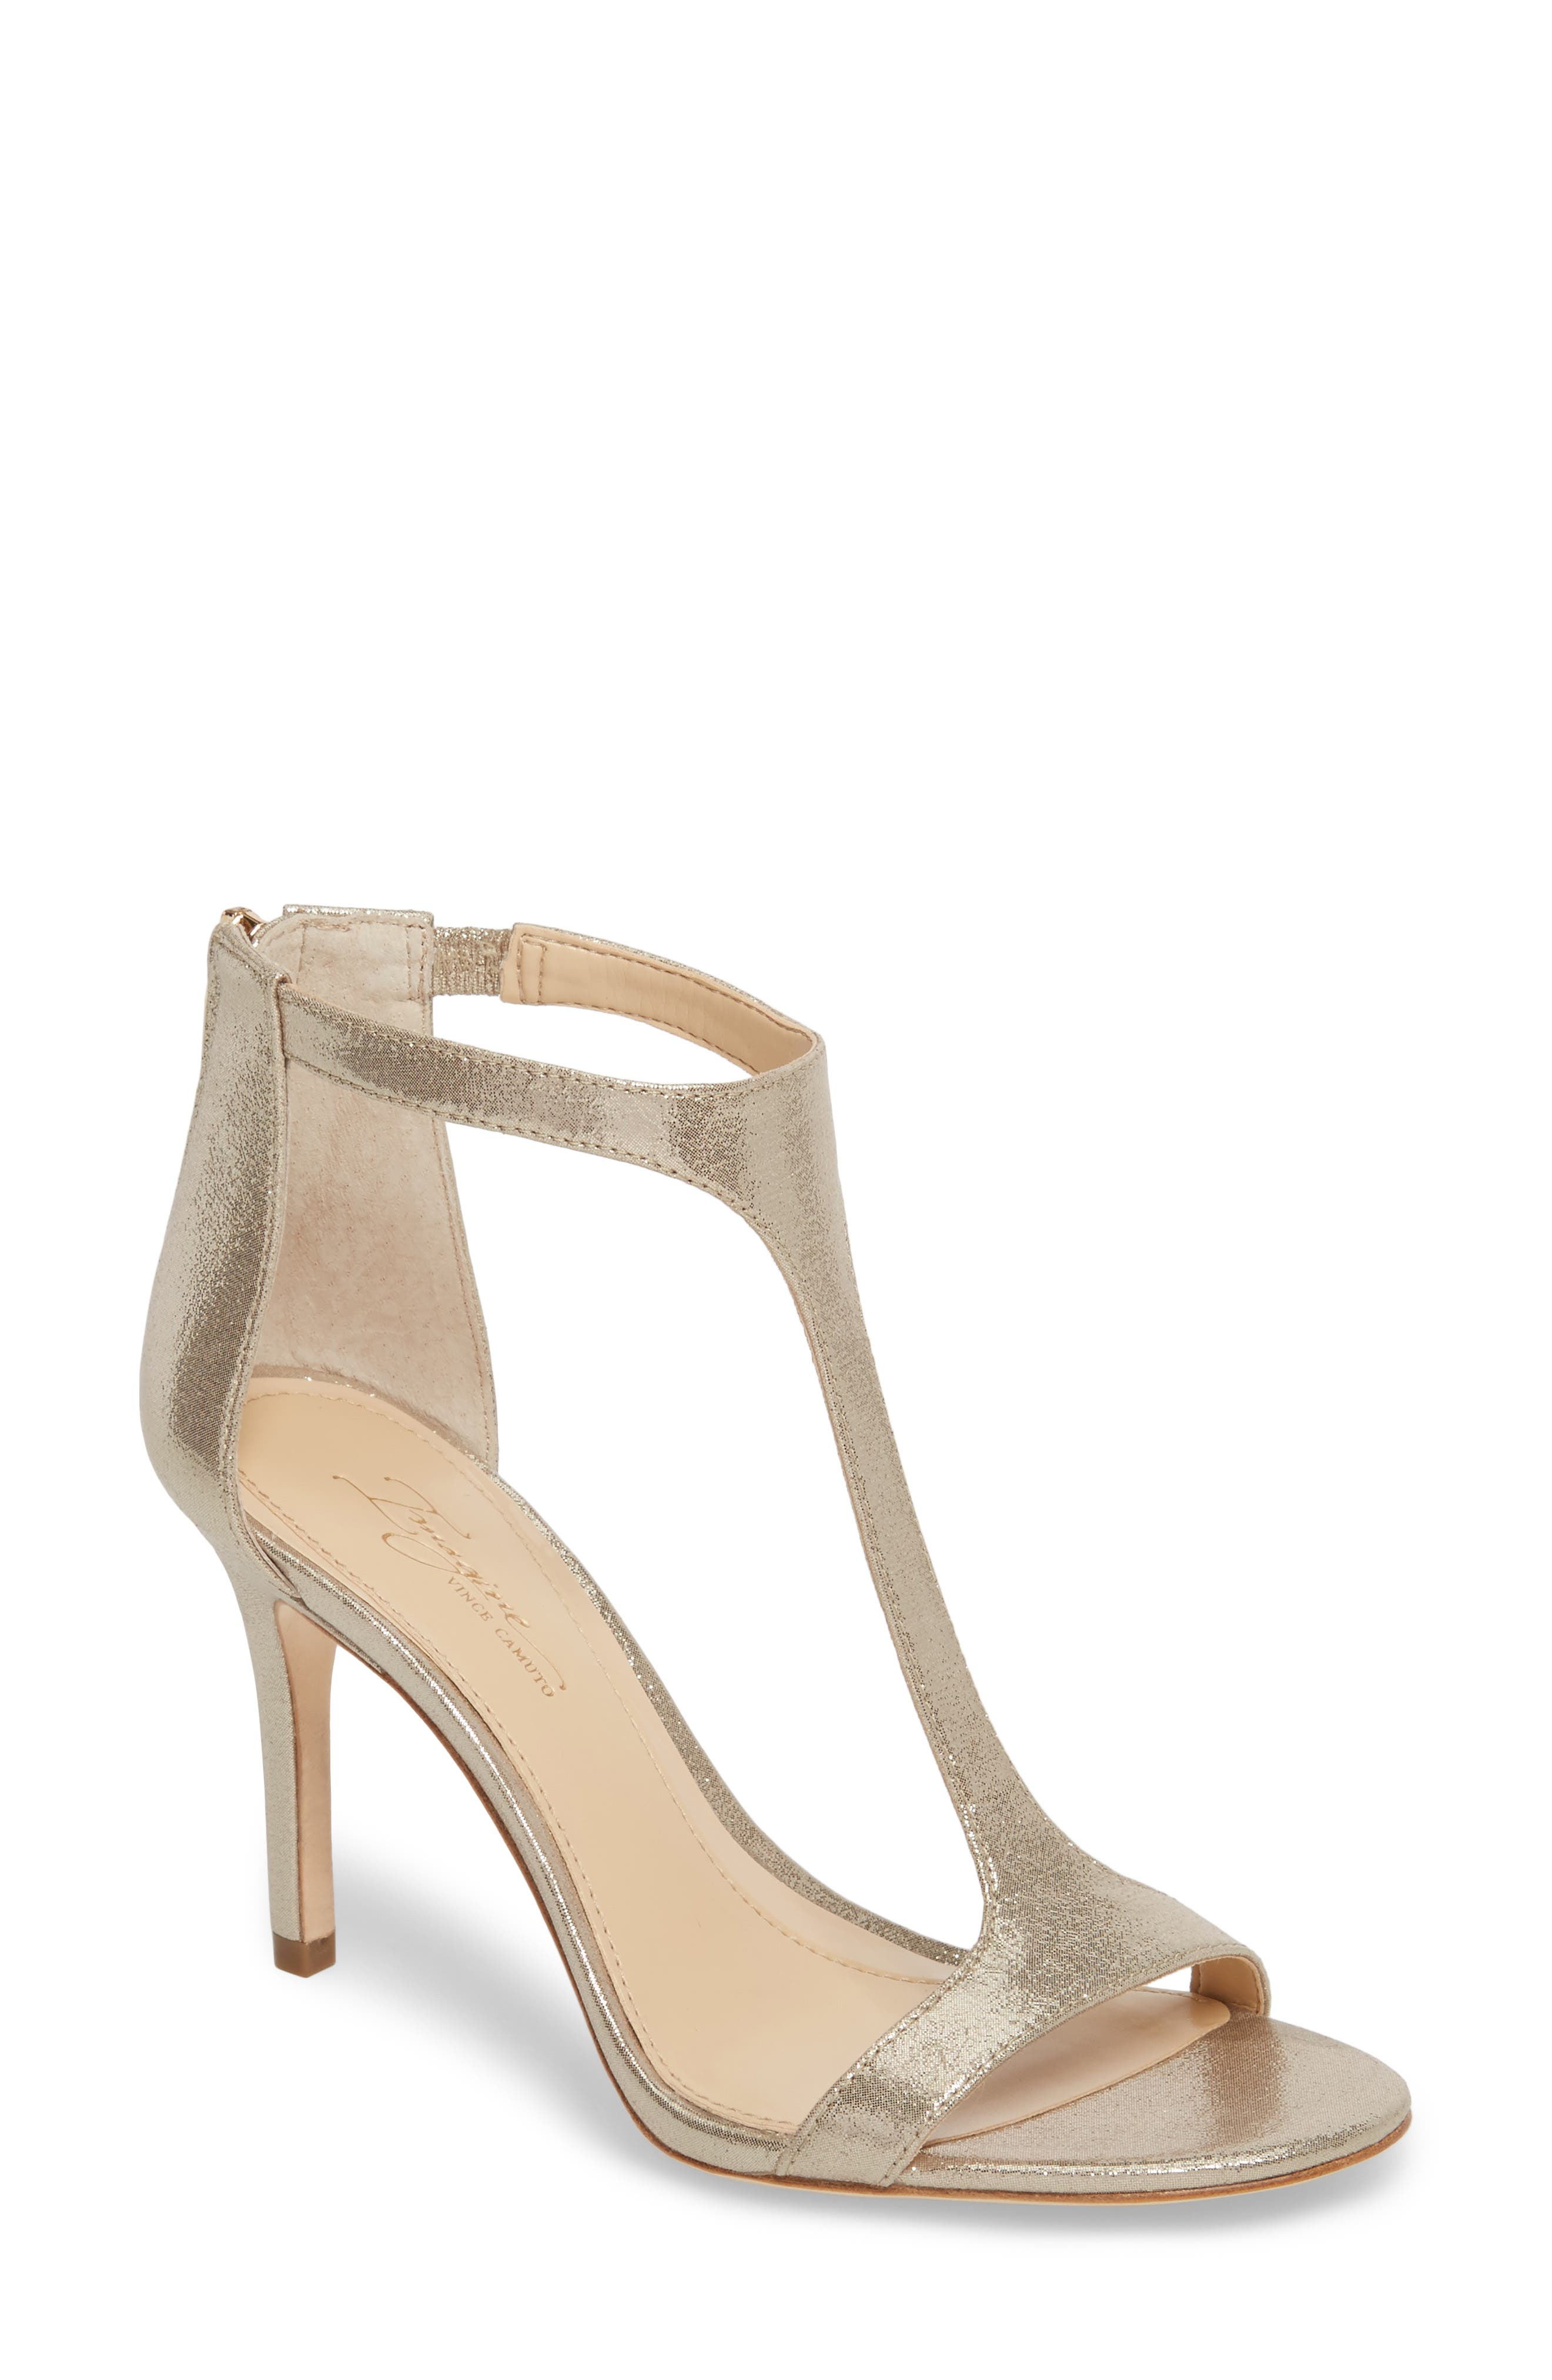 'Phoebe' Embellished T-Strap Sandal,                         Main,                         color, Gold Satin